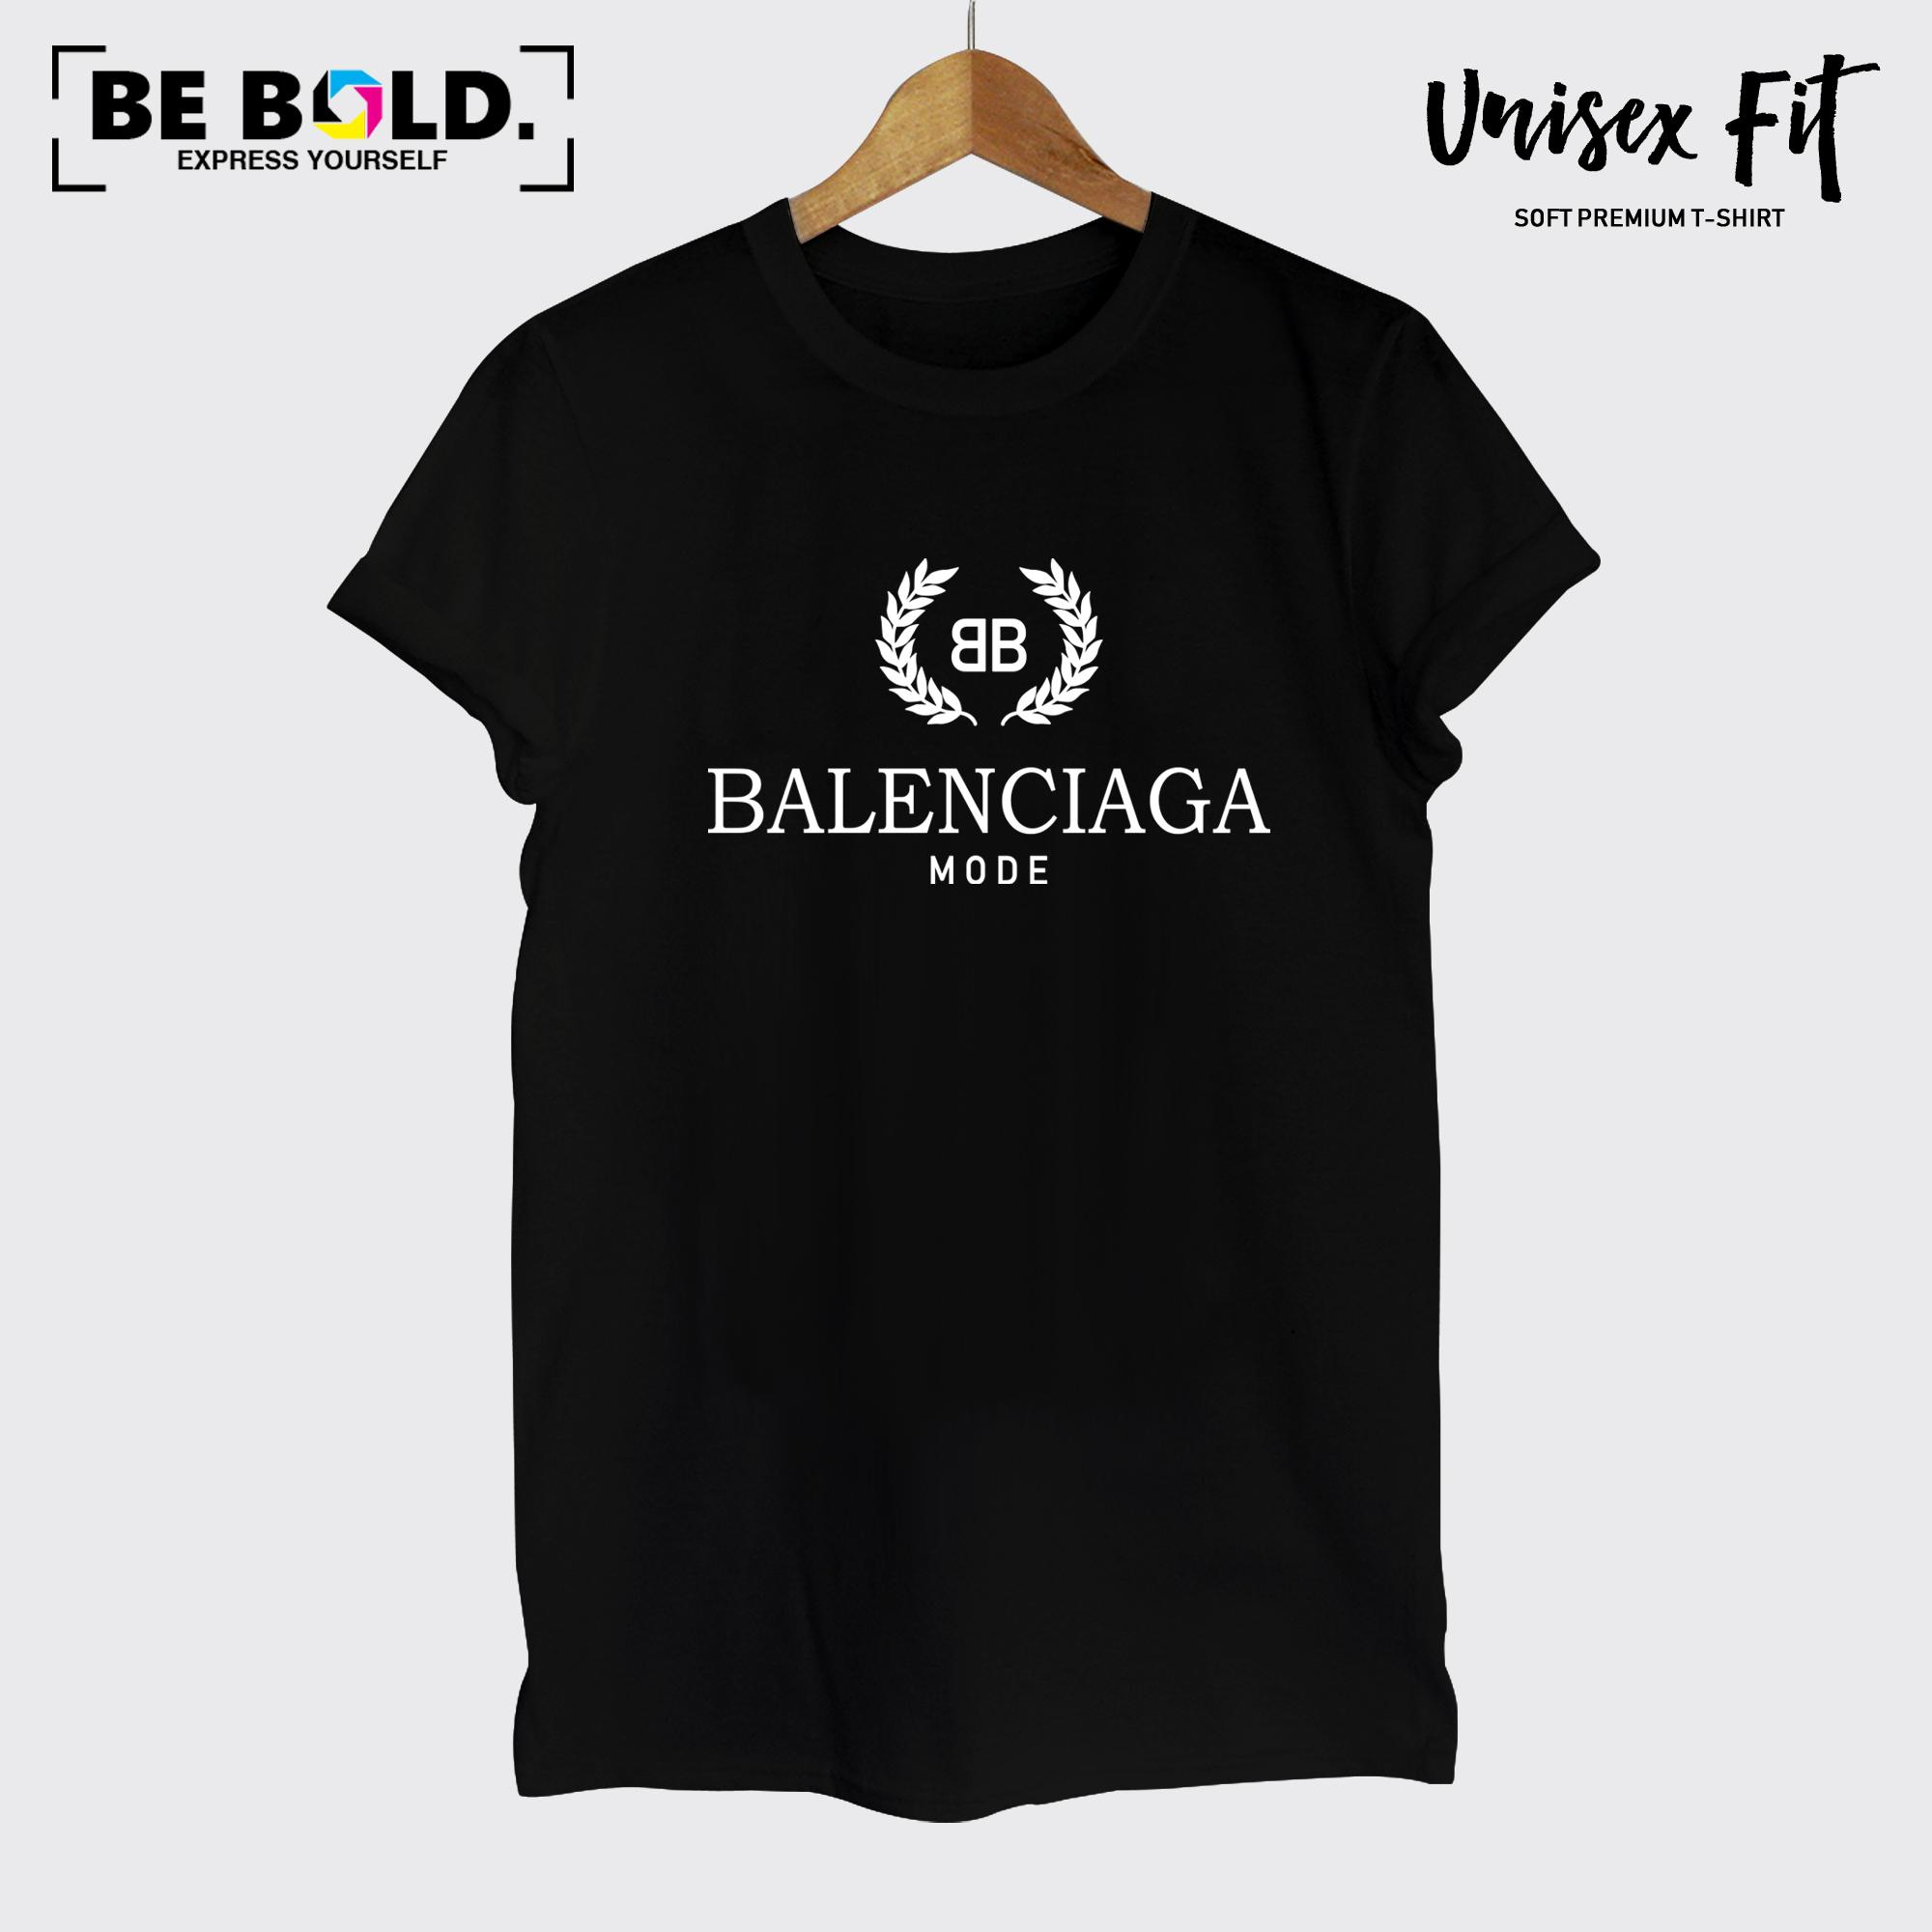 65d7034e Product details of Balenciaga T shirt Women T shirt Men T shirt  Inspirational T shirt